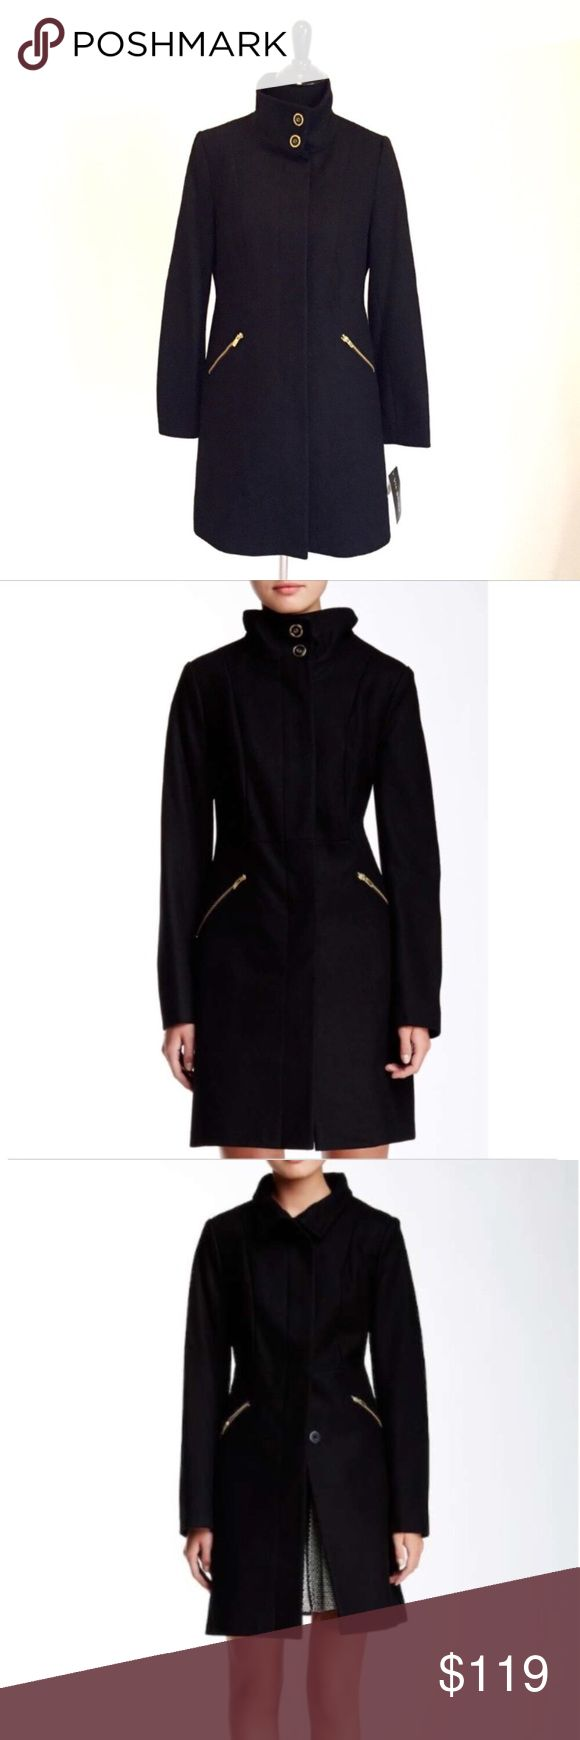 Via Spiga Black Wool Blend Coat New With Tags- keep warm in this flattering black coat with stand up collar, long sleeves, concealed front button closure, 2 front zip pockets and full lining. Shell:60% Wool, 30% Polyester, 10% Viscose. Lining: 100% Polyester. Measurements are included in last photo. Via Spiga Jackets & Coats